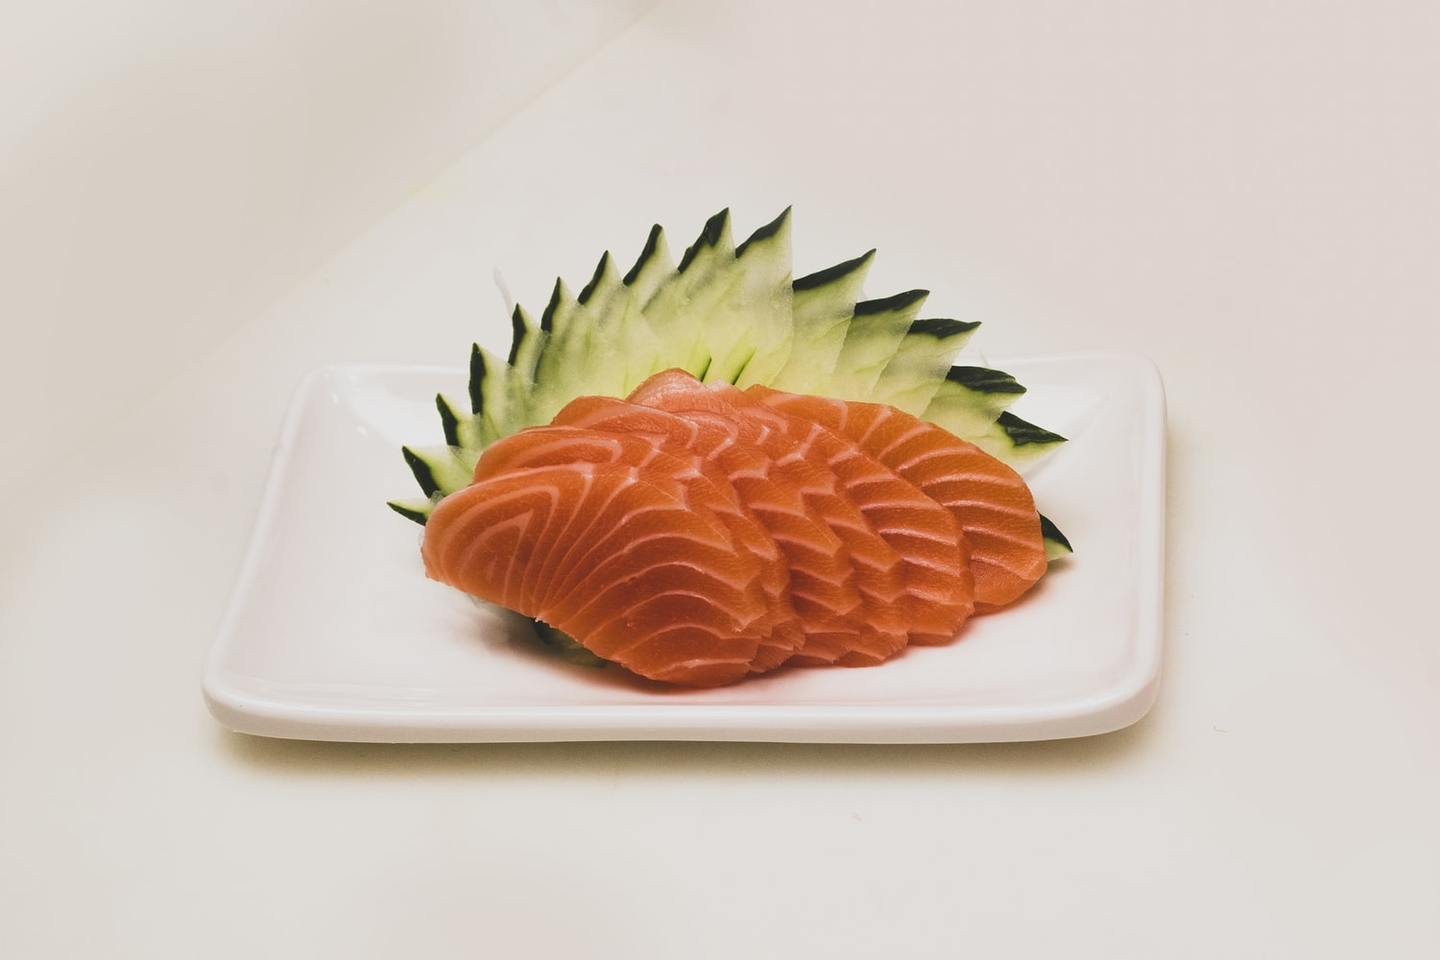 Slices of salmon on a plate